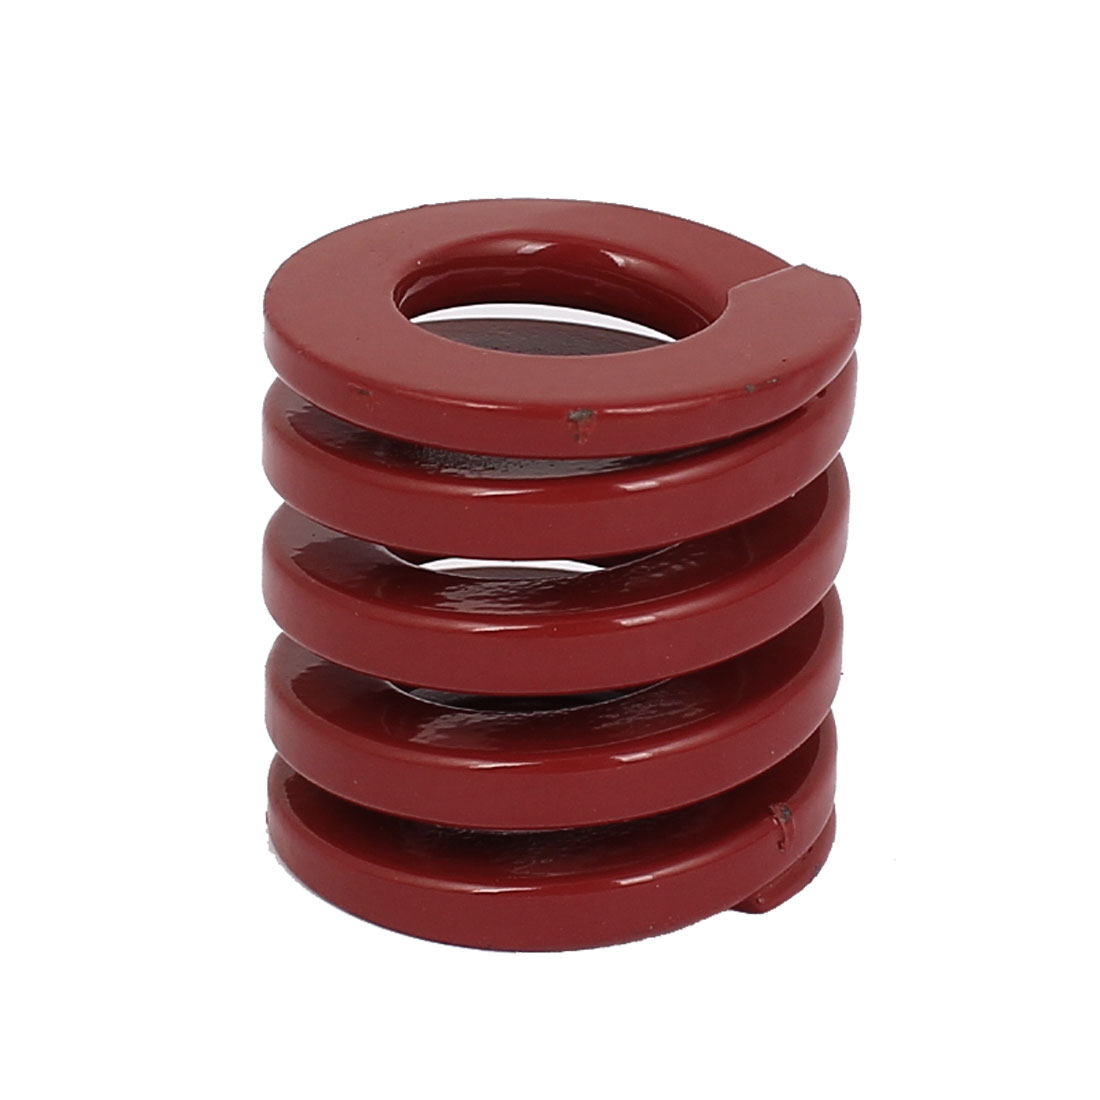 30mm OD 30mm Long Coil Medium Load Stamping Compression Mold Die Spring Red